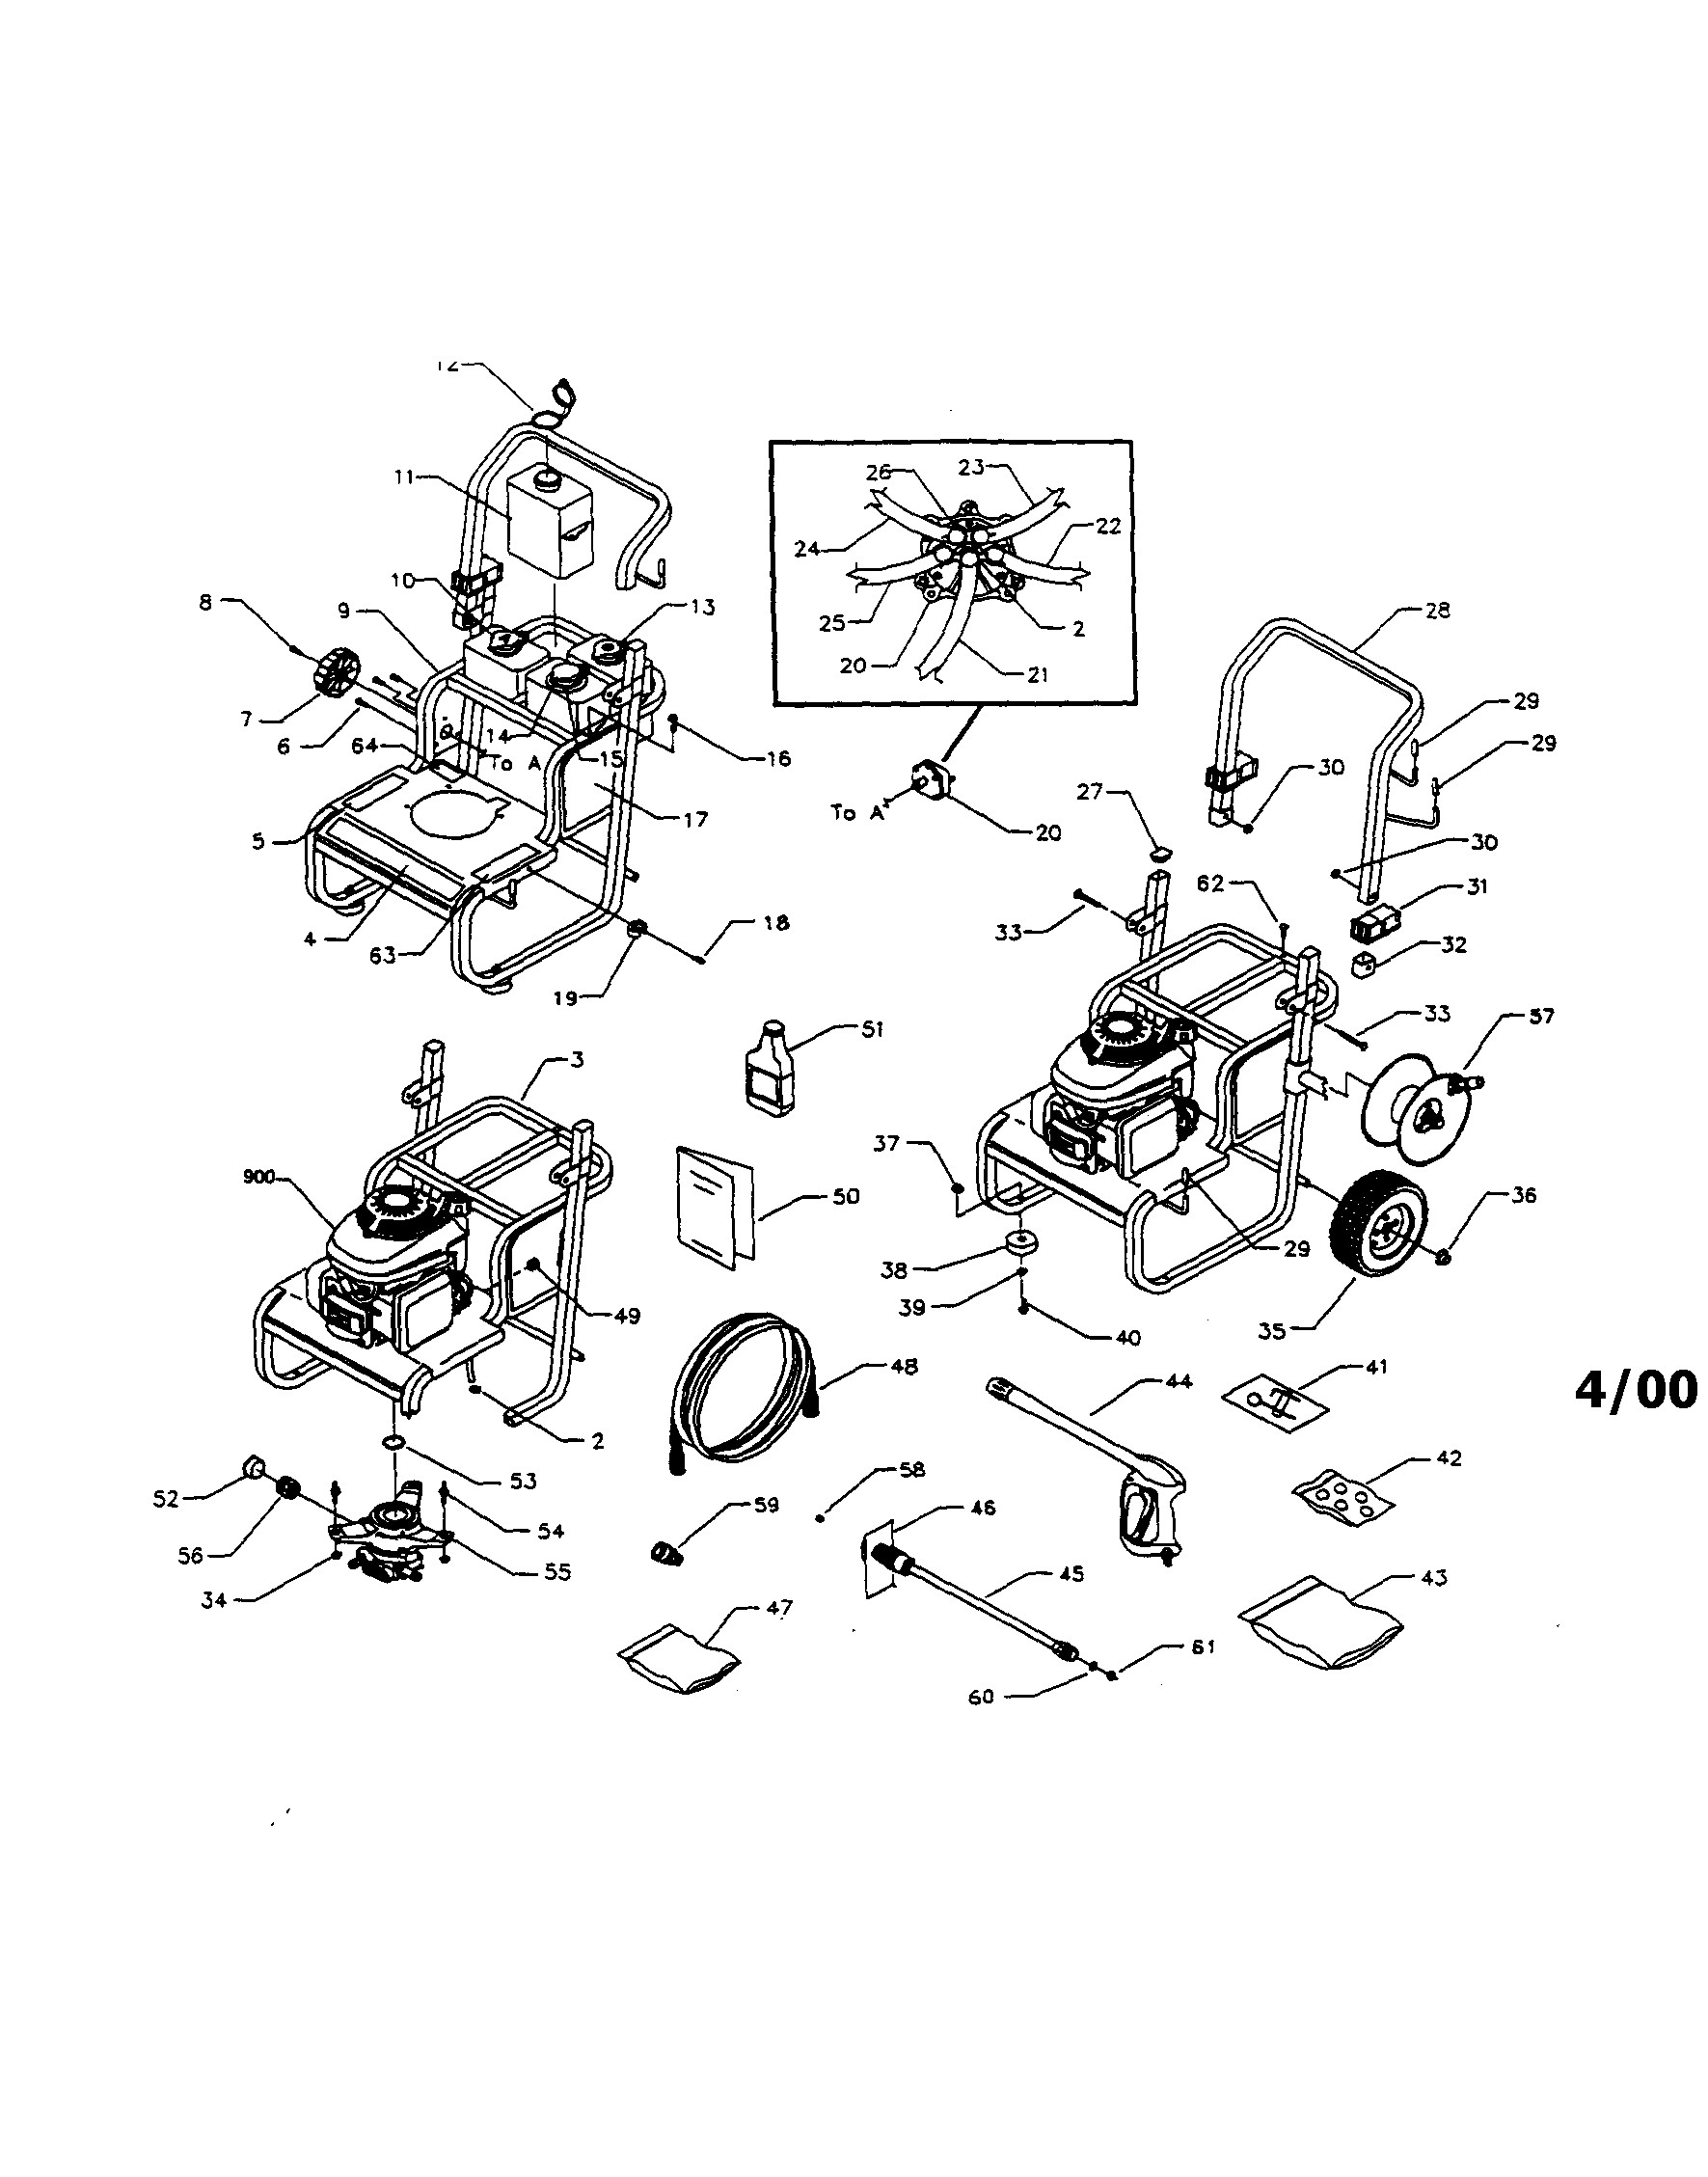 honda gc160 parts diagram craftsman model power washer gas